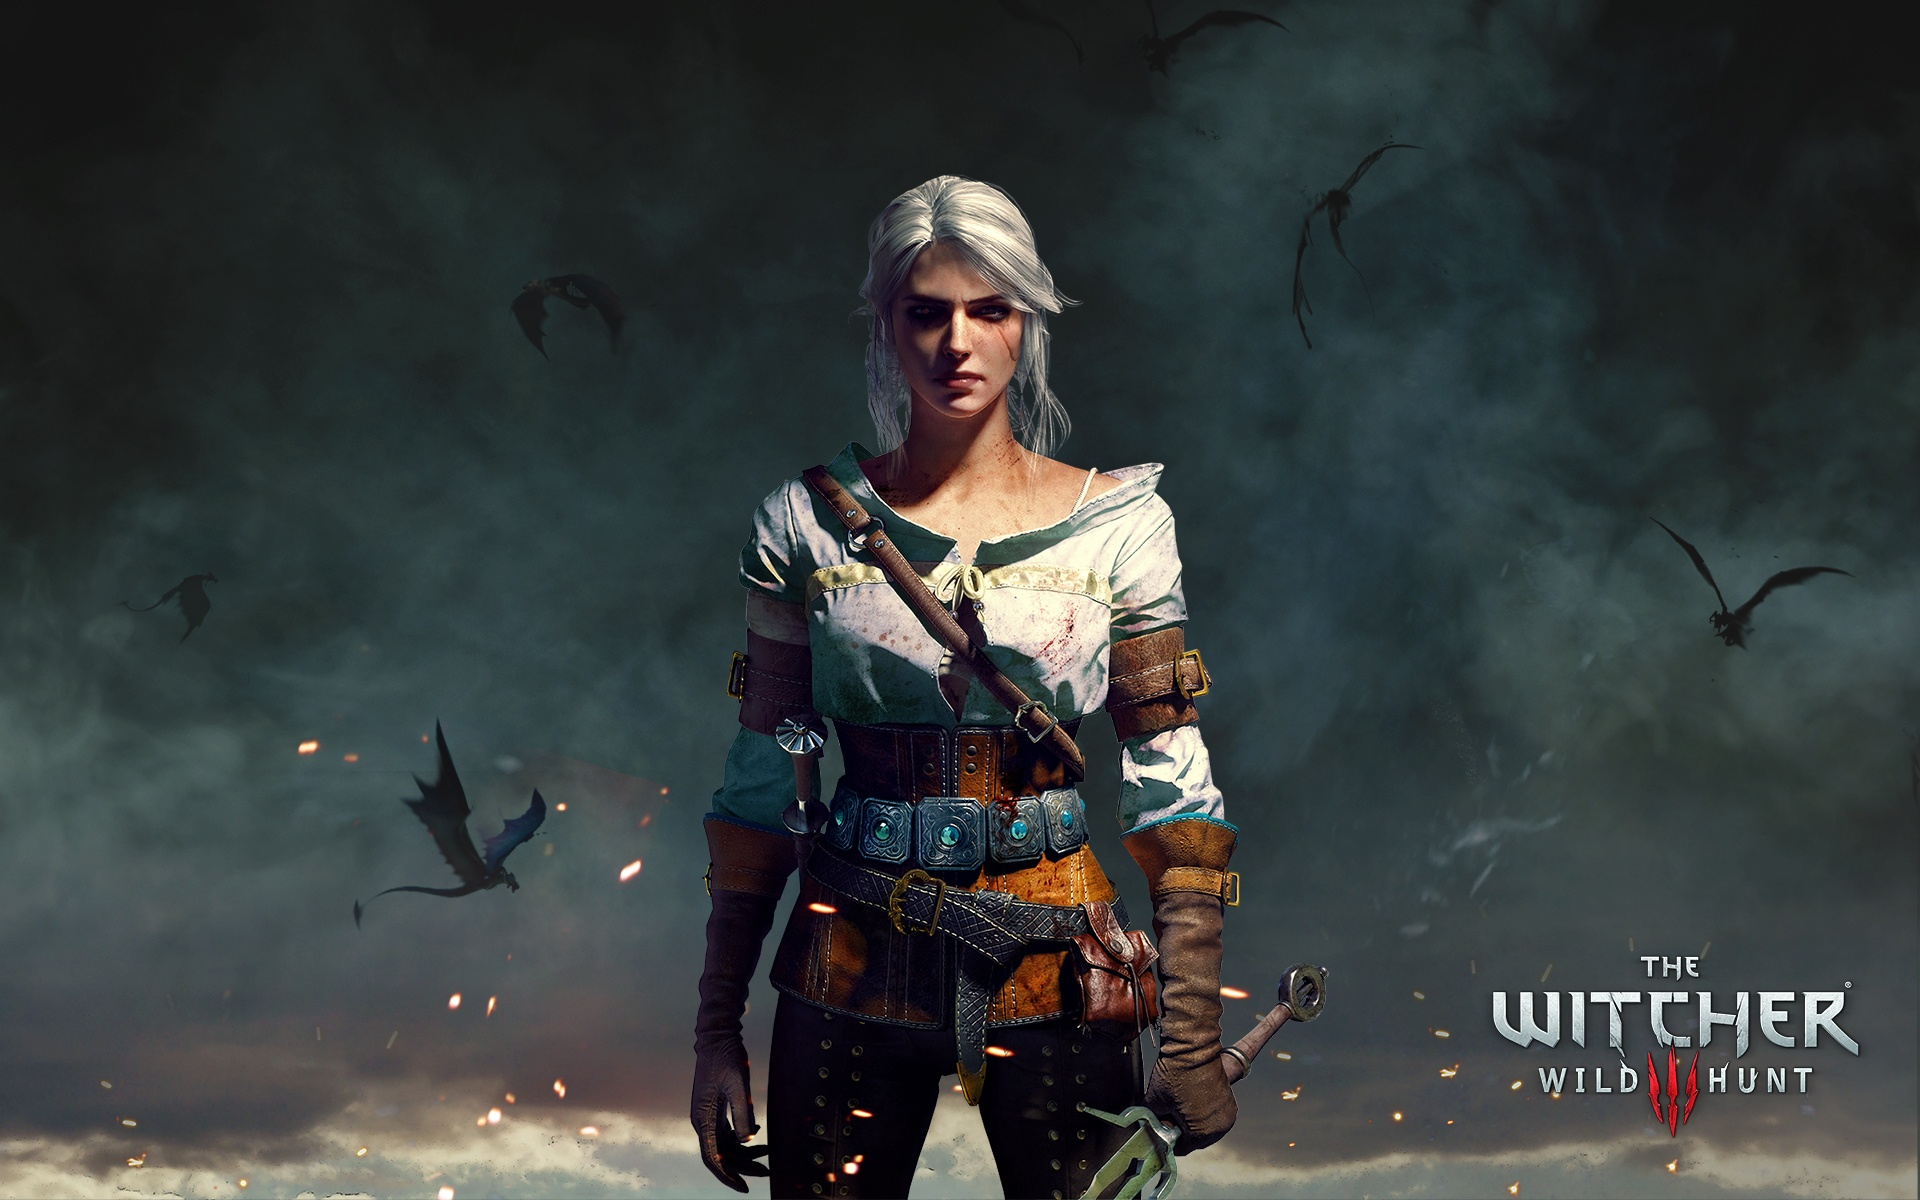 Ciri The Witcher 3 Wild Hunt Wallpapers in jpg format for 1920x1200